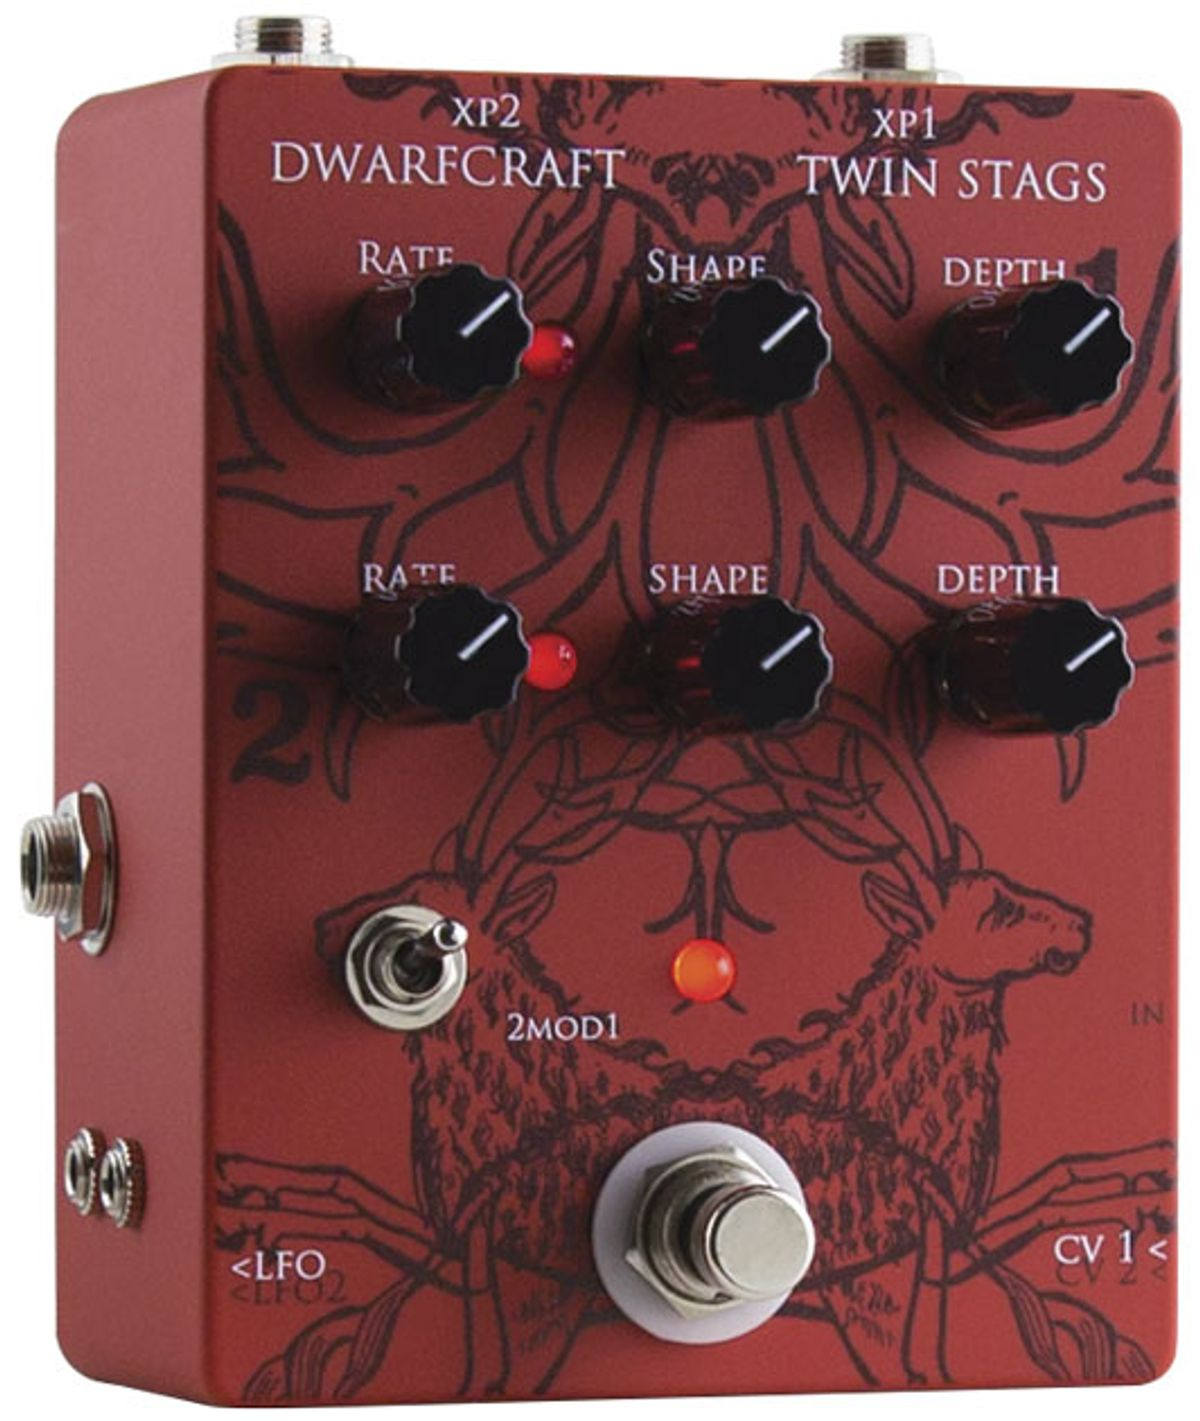 Dwarfcraft Devices Twin Stags Tremolo Review